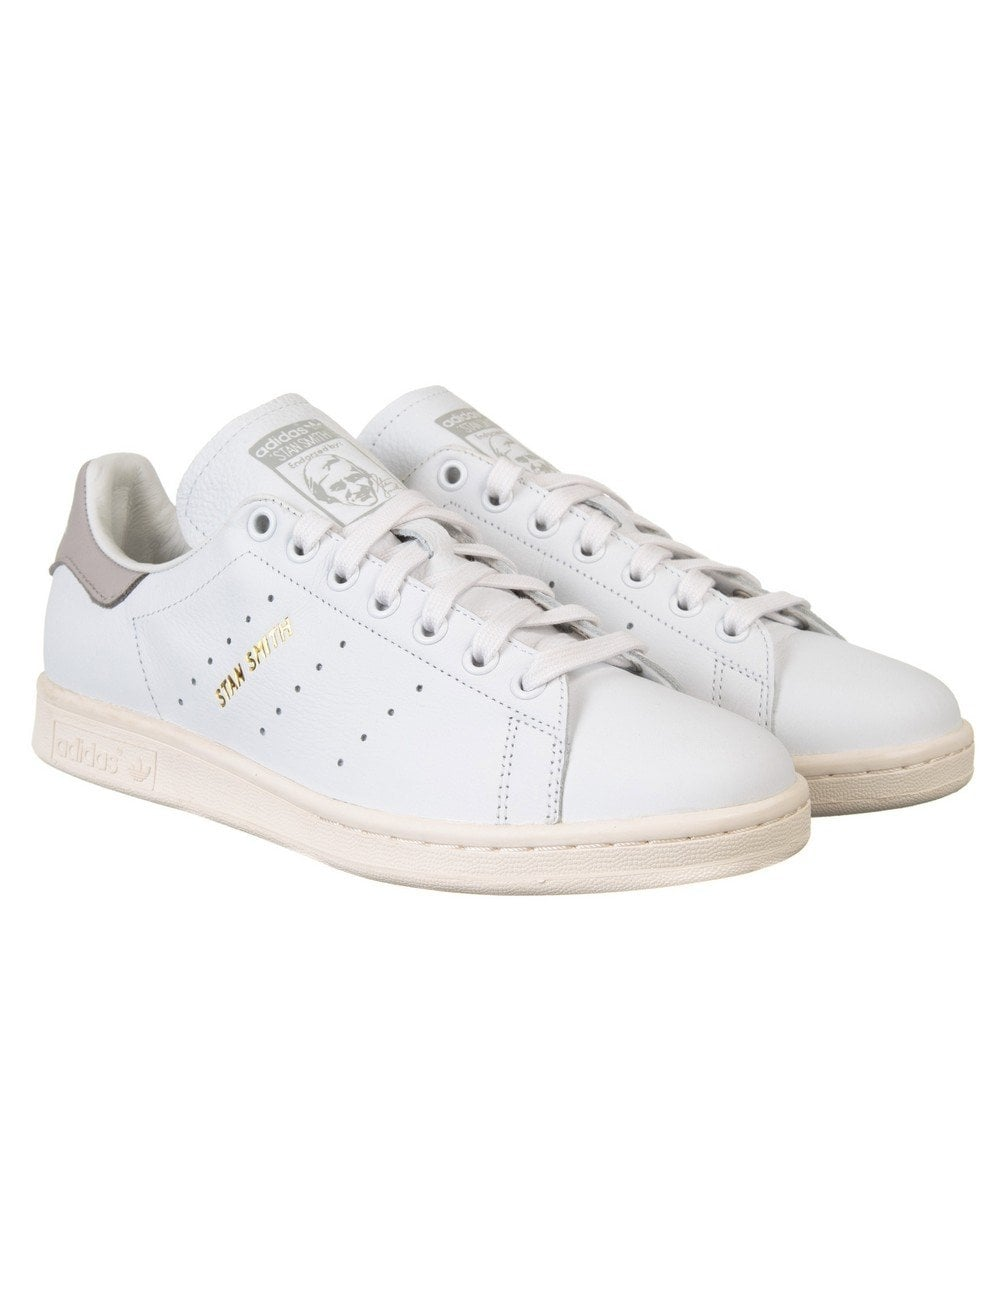 Stan Smith Shoes - White/Grey